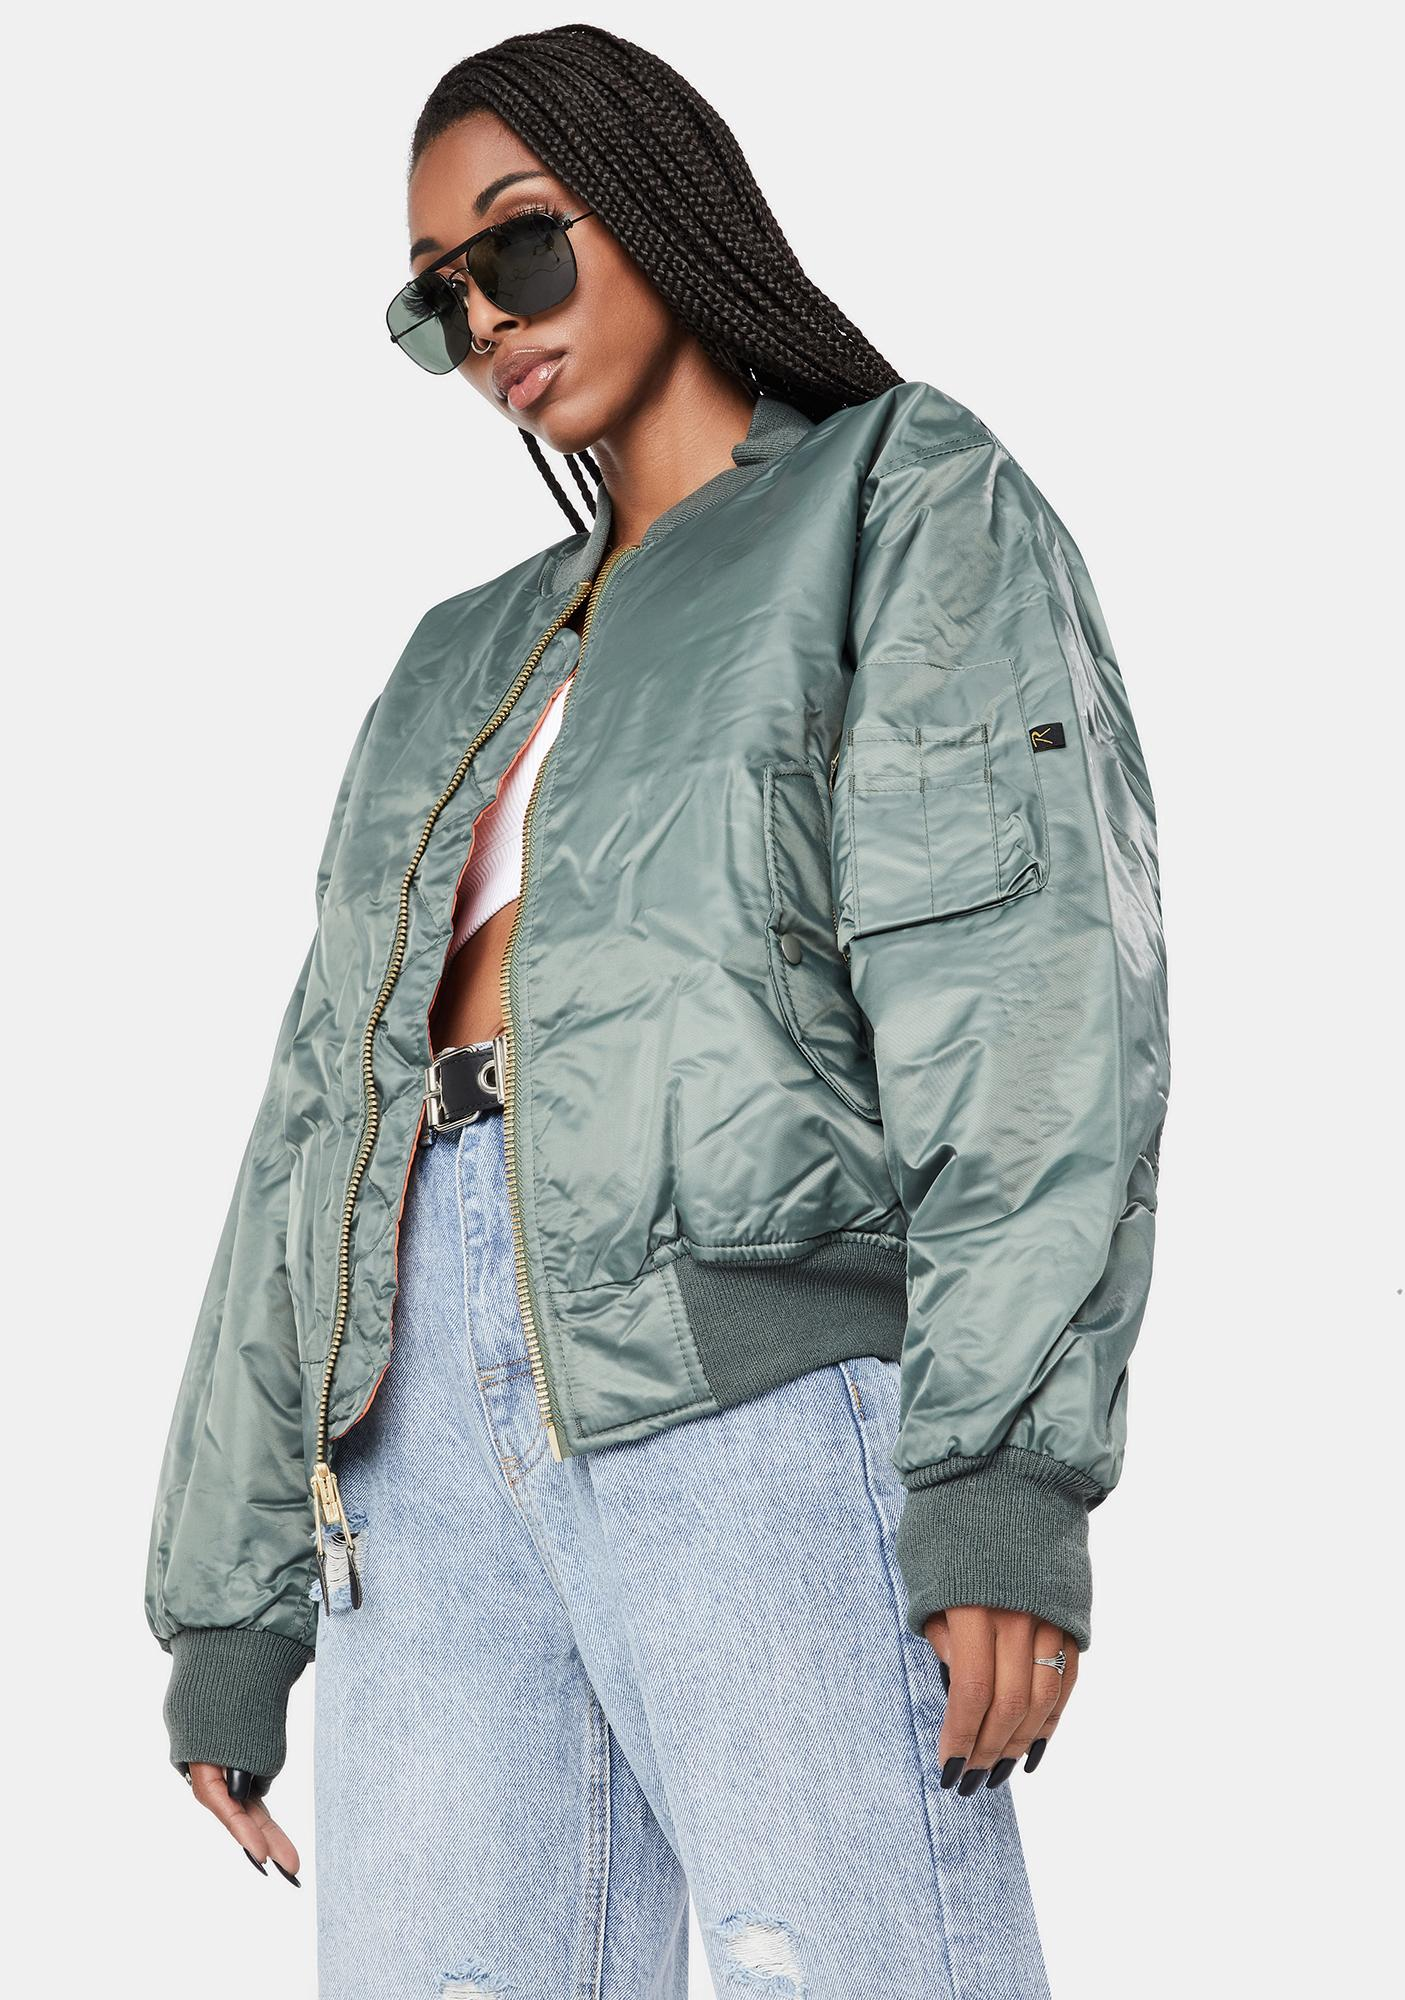 Rothco Sage Green MA-1 Flight Jacket